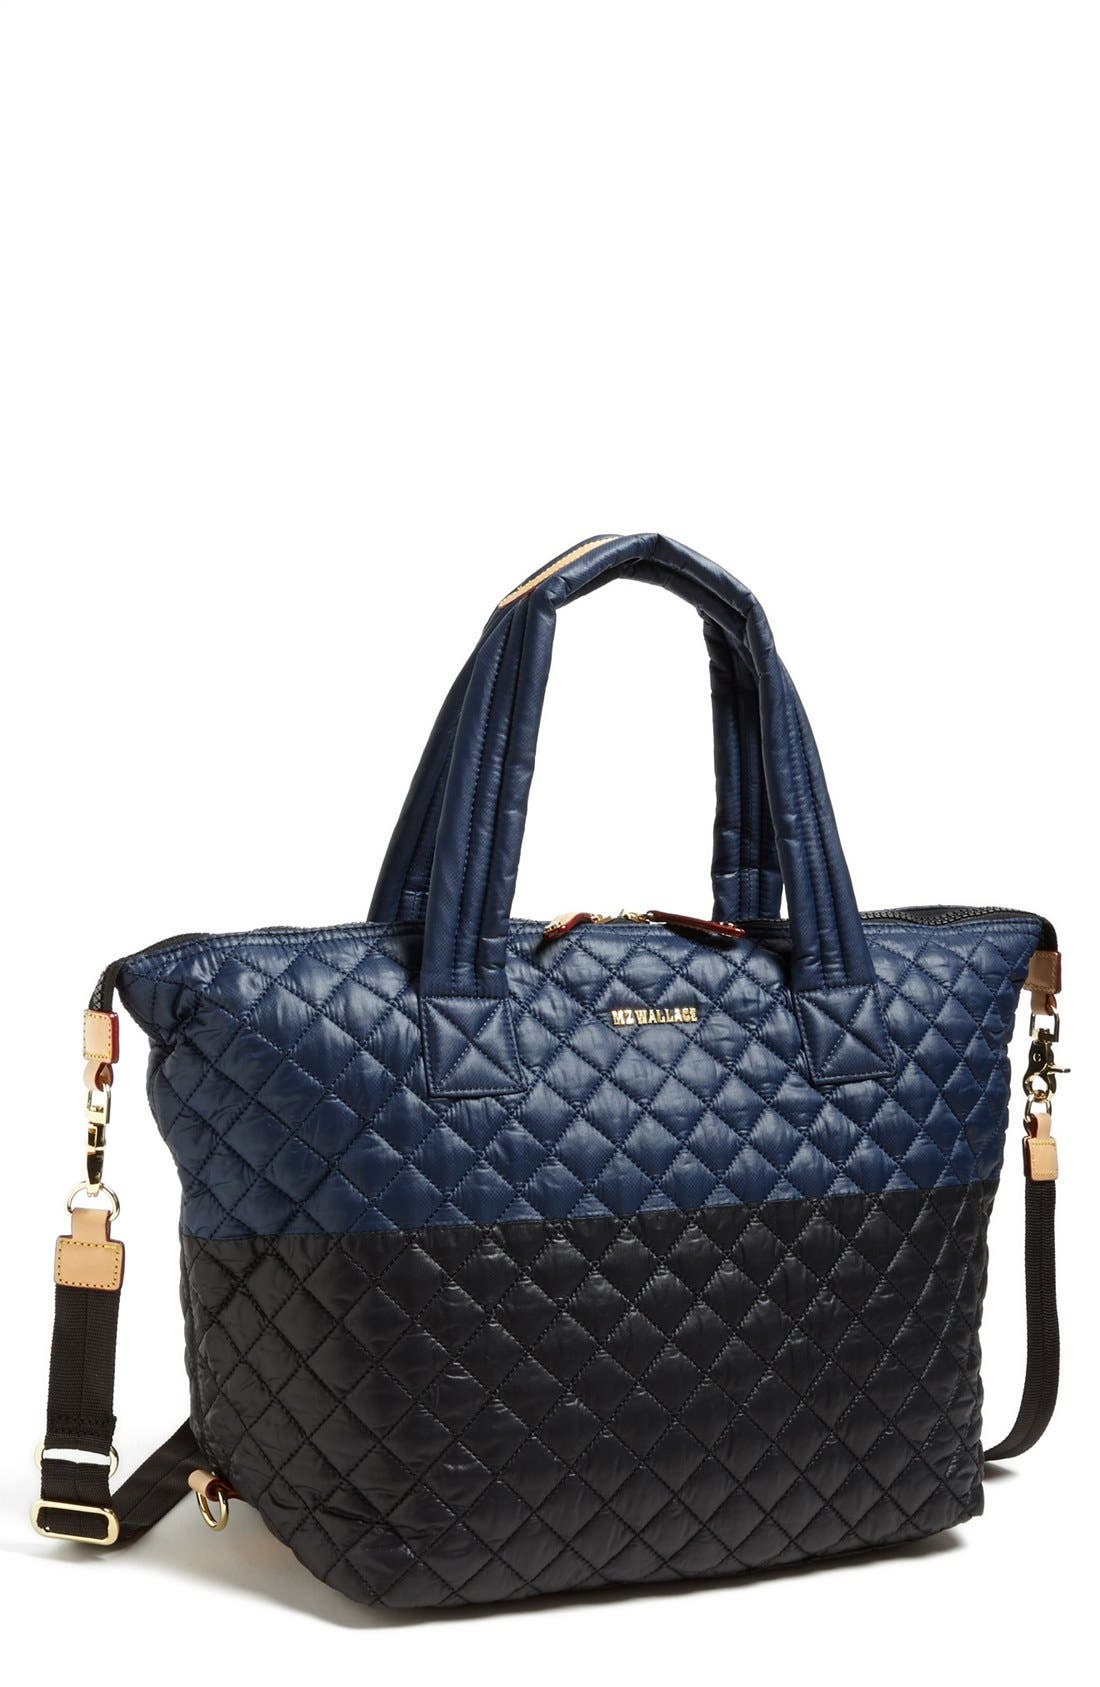 Alternate Image 1 Selected - MZ Wallace 'Large Sutton' Quilted Tote